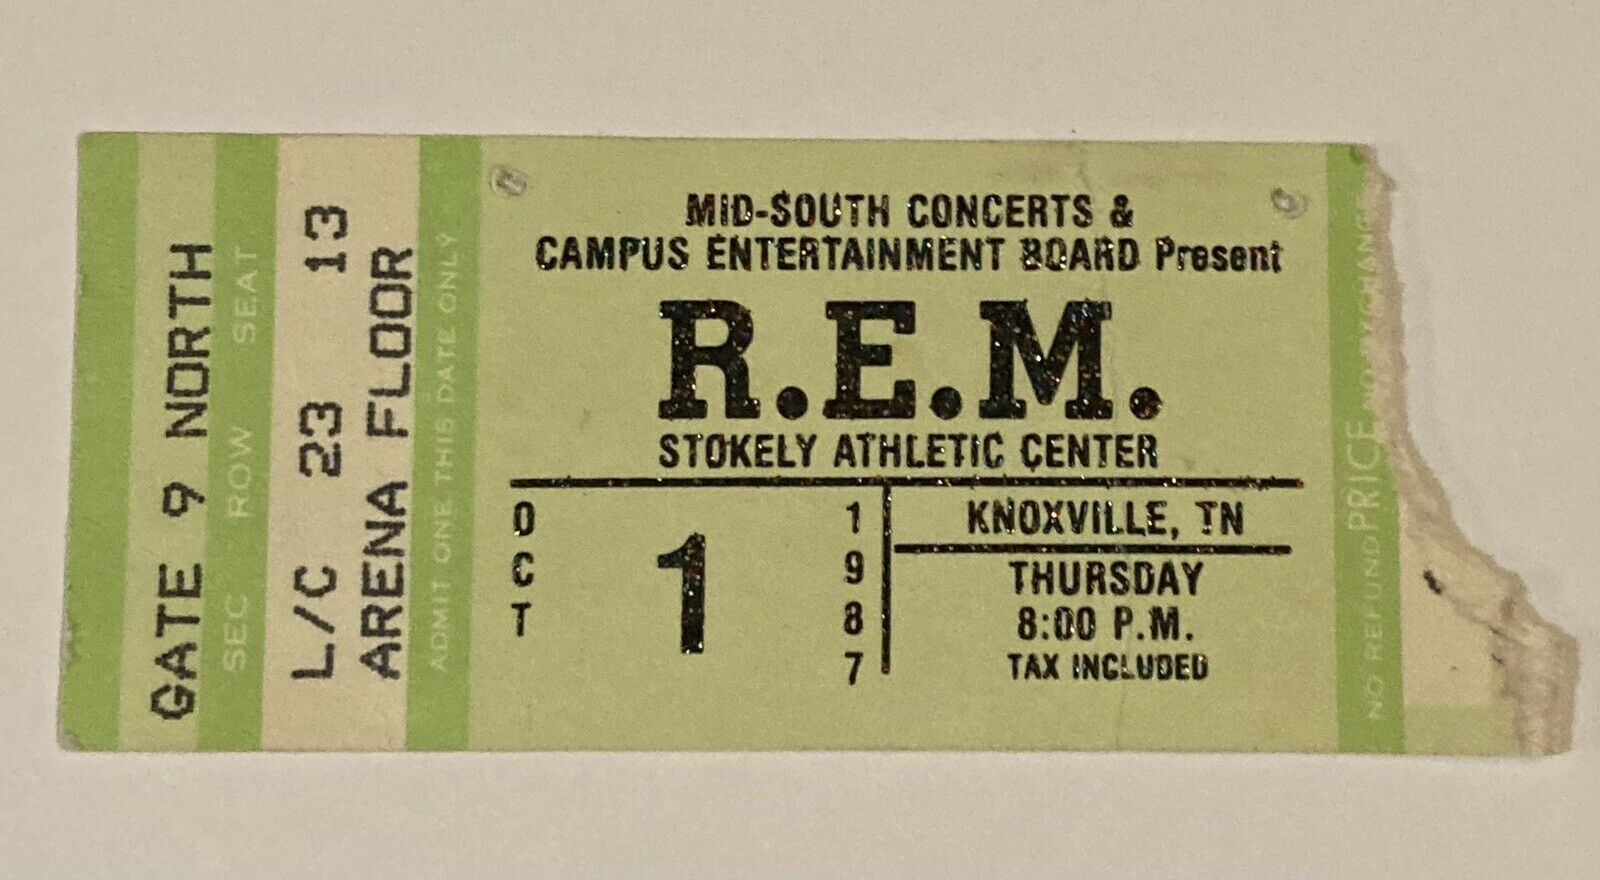 Saw R.E.M. at Stokley Athletic center at the University of Tennessee.